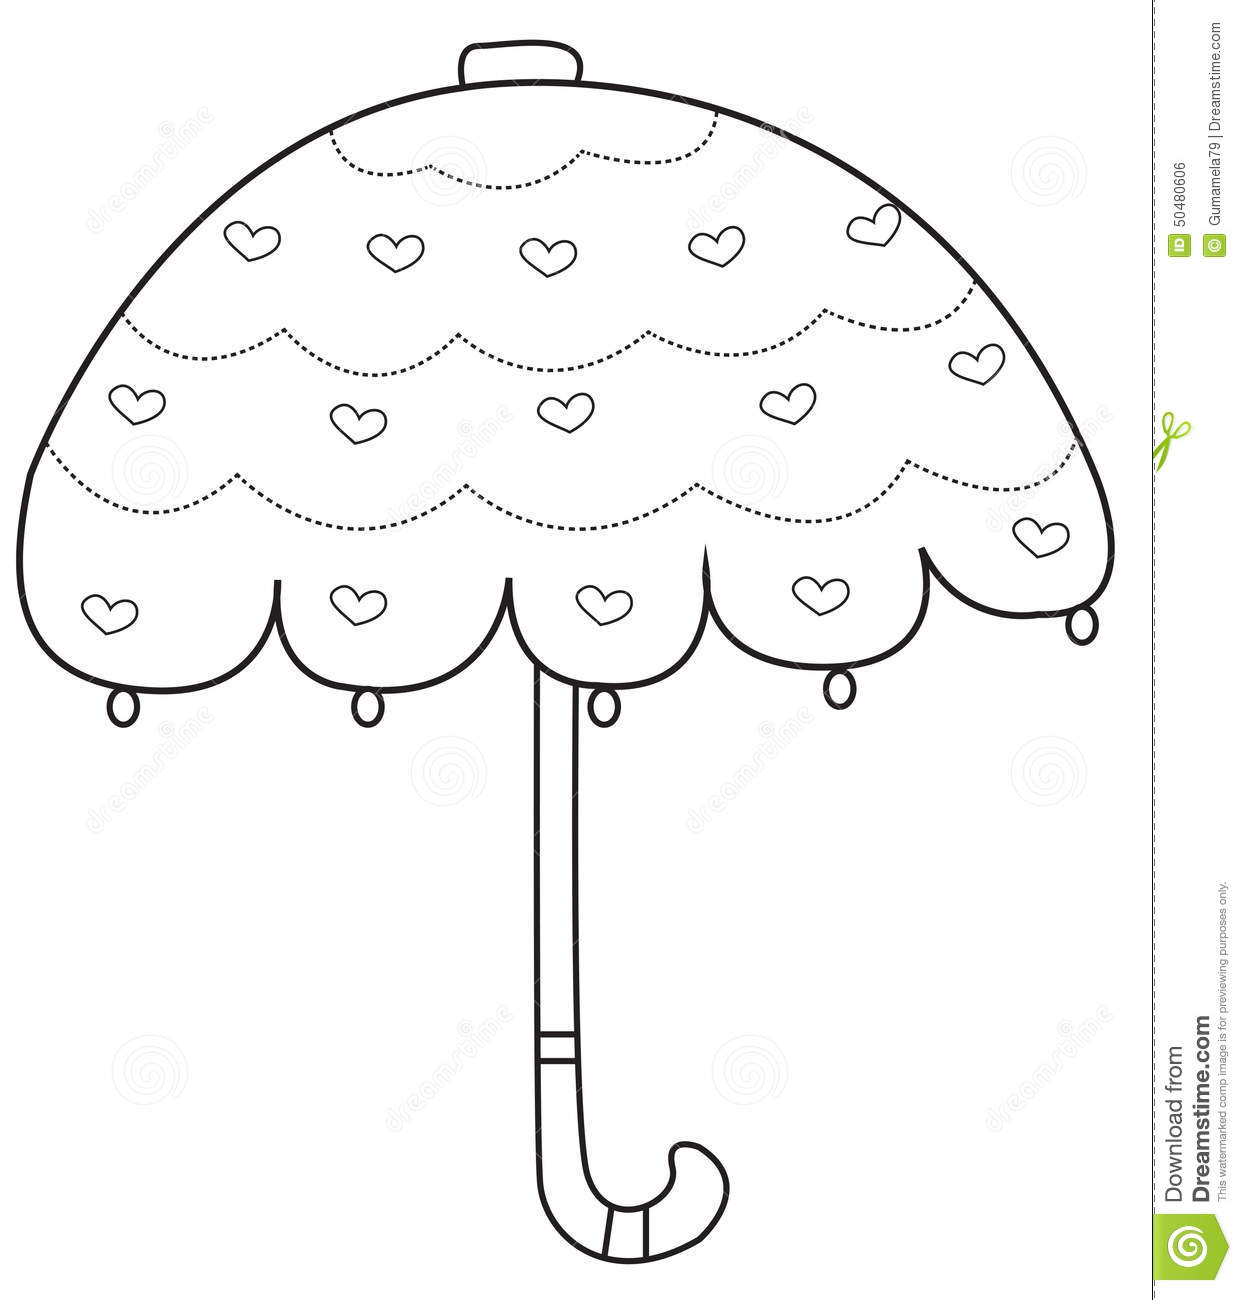 Umbrella Coloring Page Stock Illustration